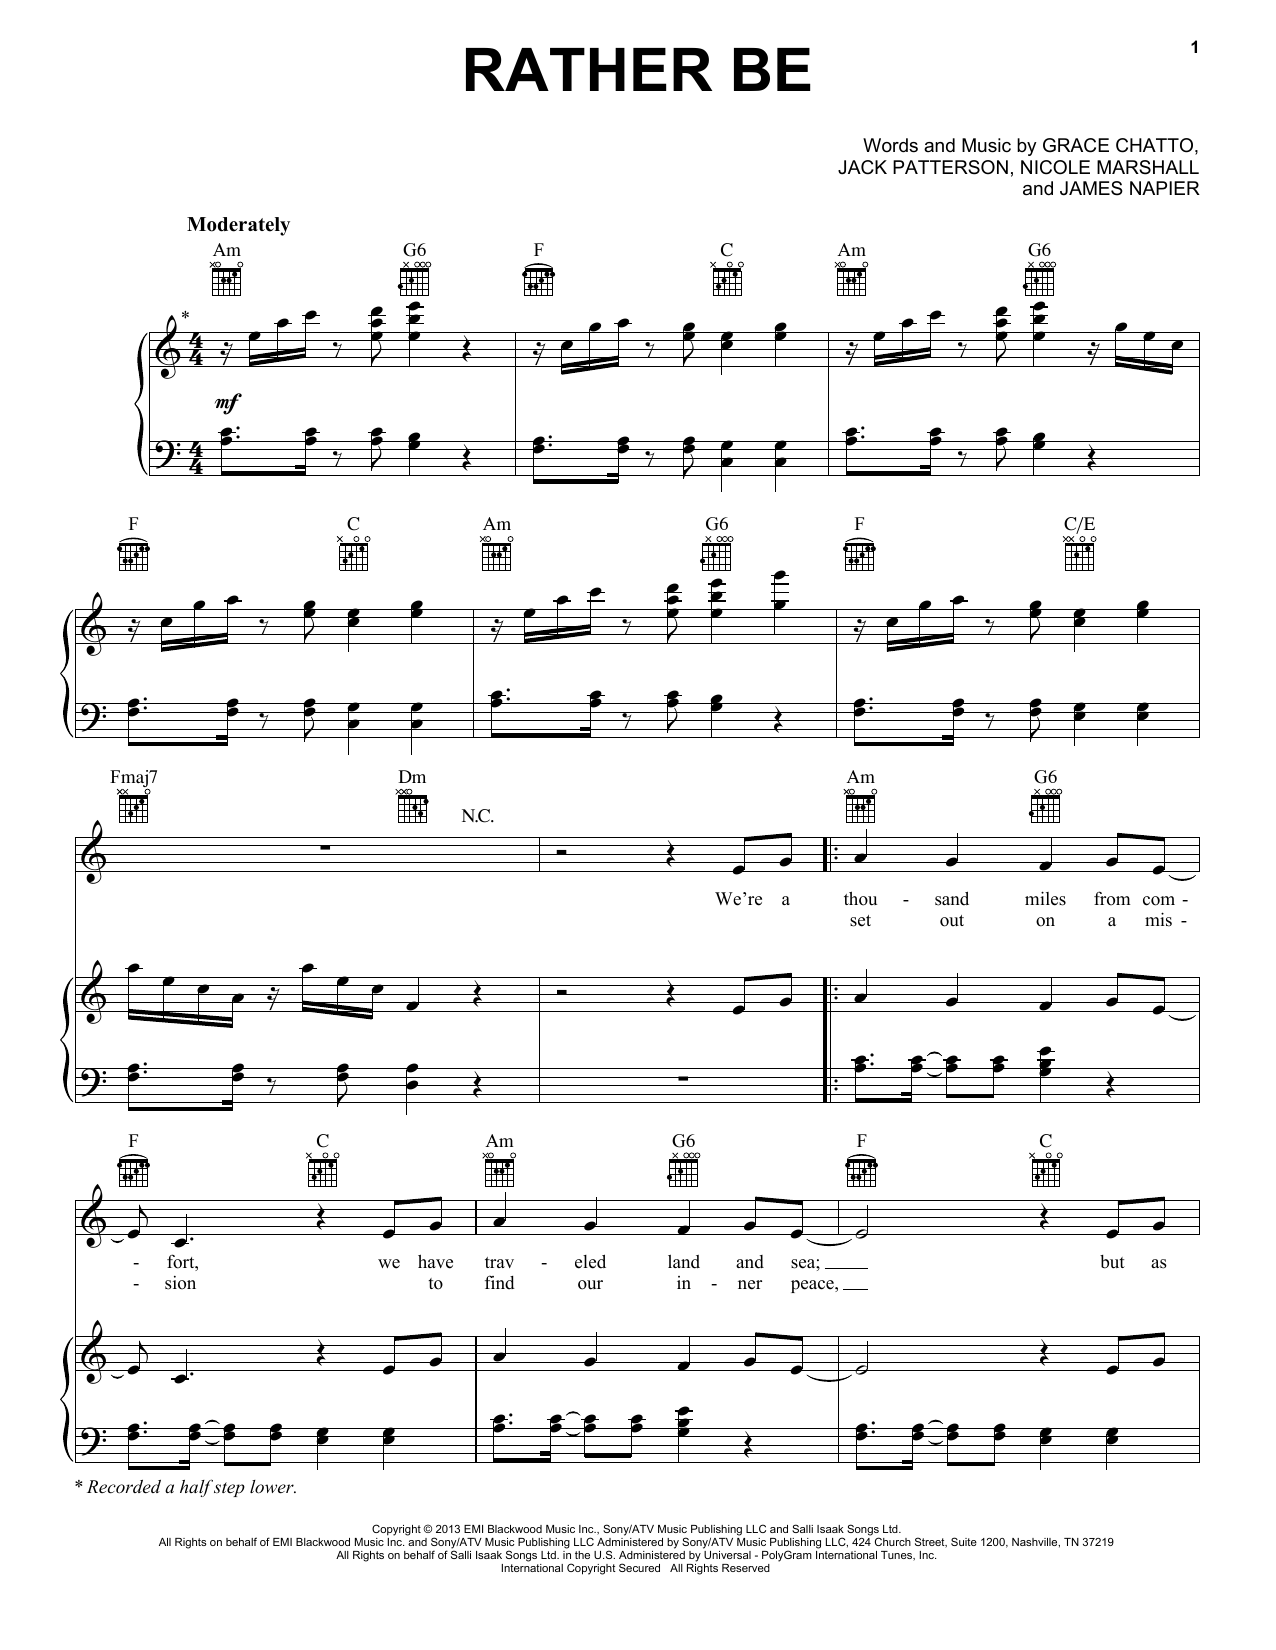 Ukulele rather be ukulele chords : Rather Be | Sheet Music Direct